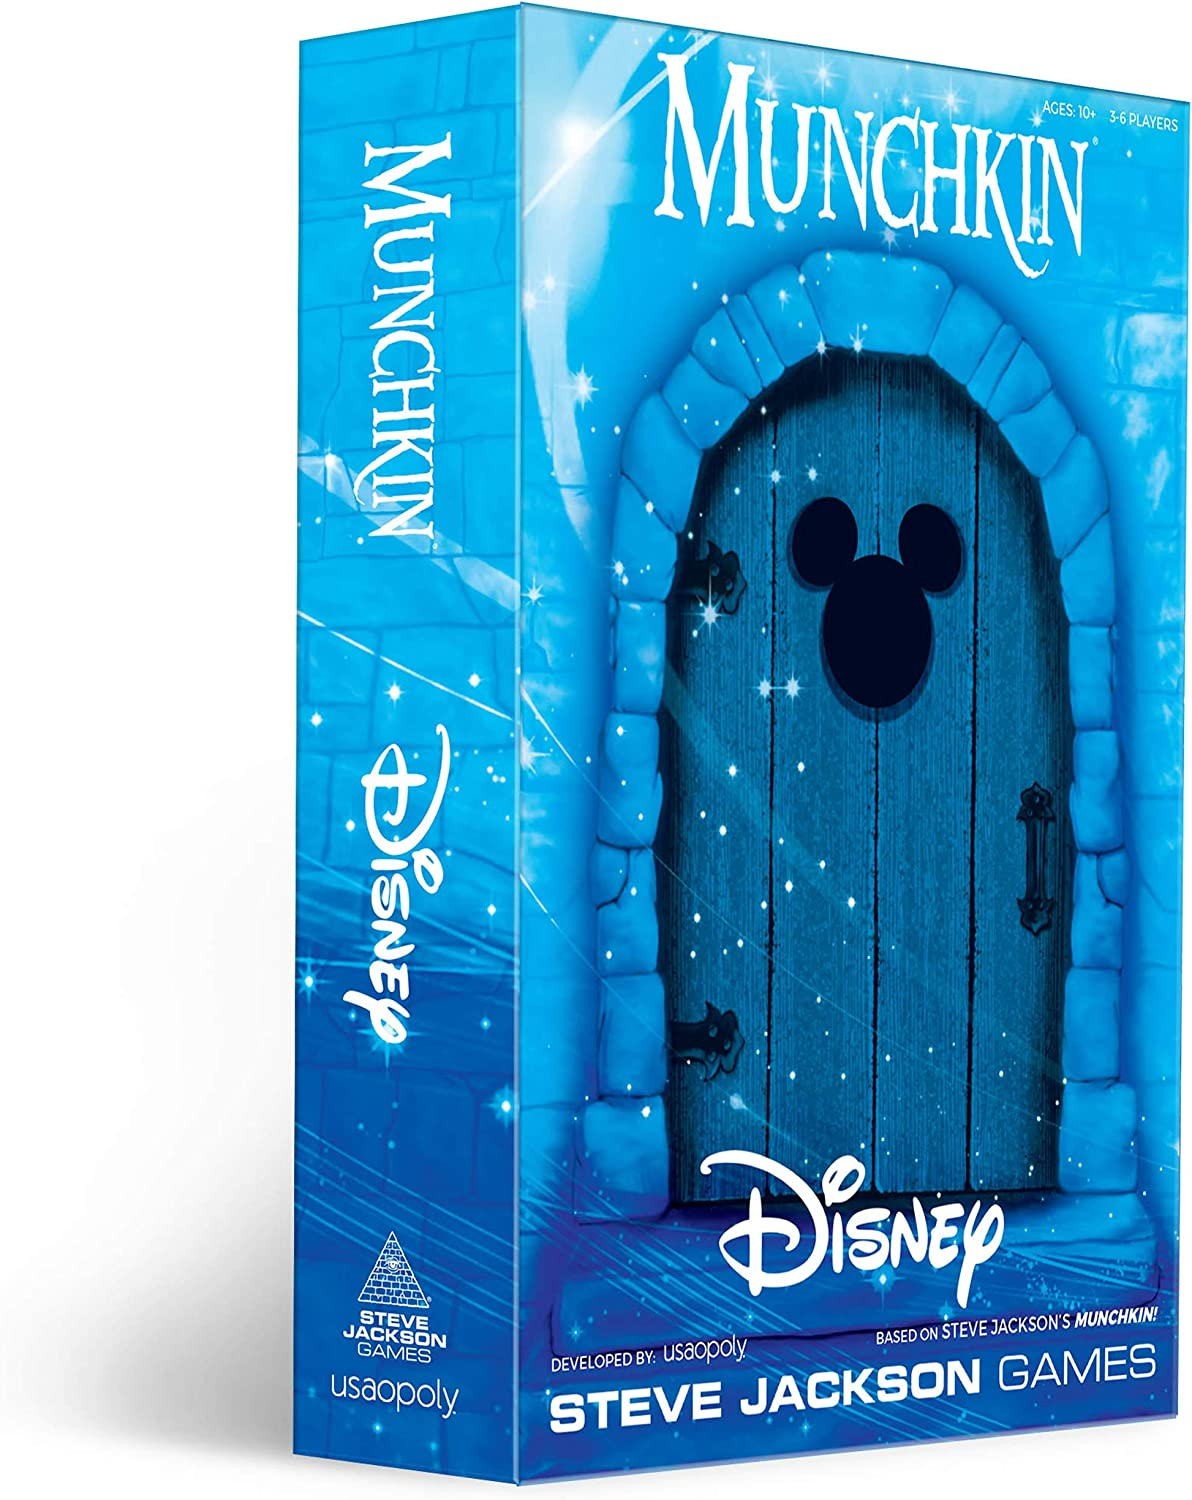 Munchkin: Disney Card Game | Munchkin Game Featuring Disney Characters and Villains | Officially Licensed Disney Card Game | Tabletop Games & Board Games for Disney Fans